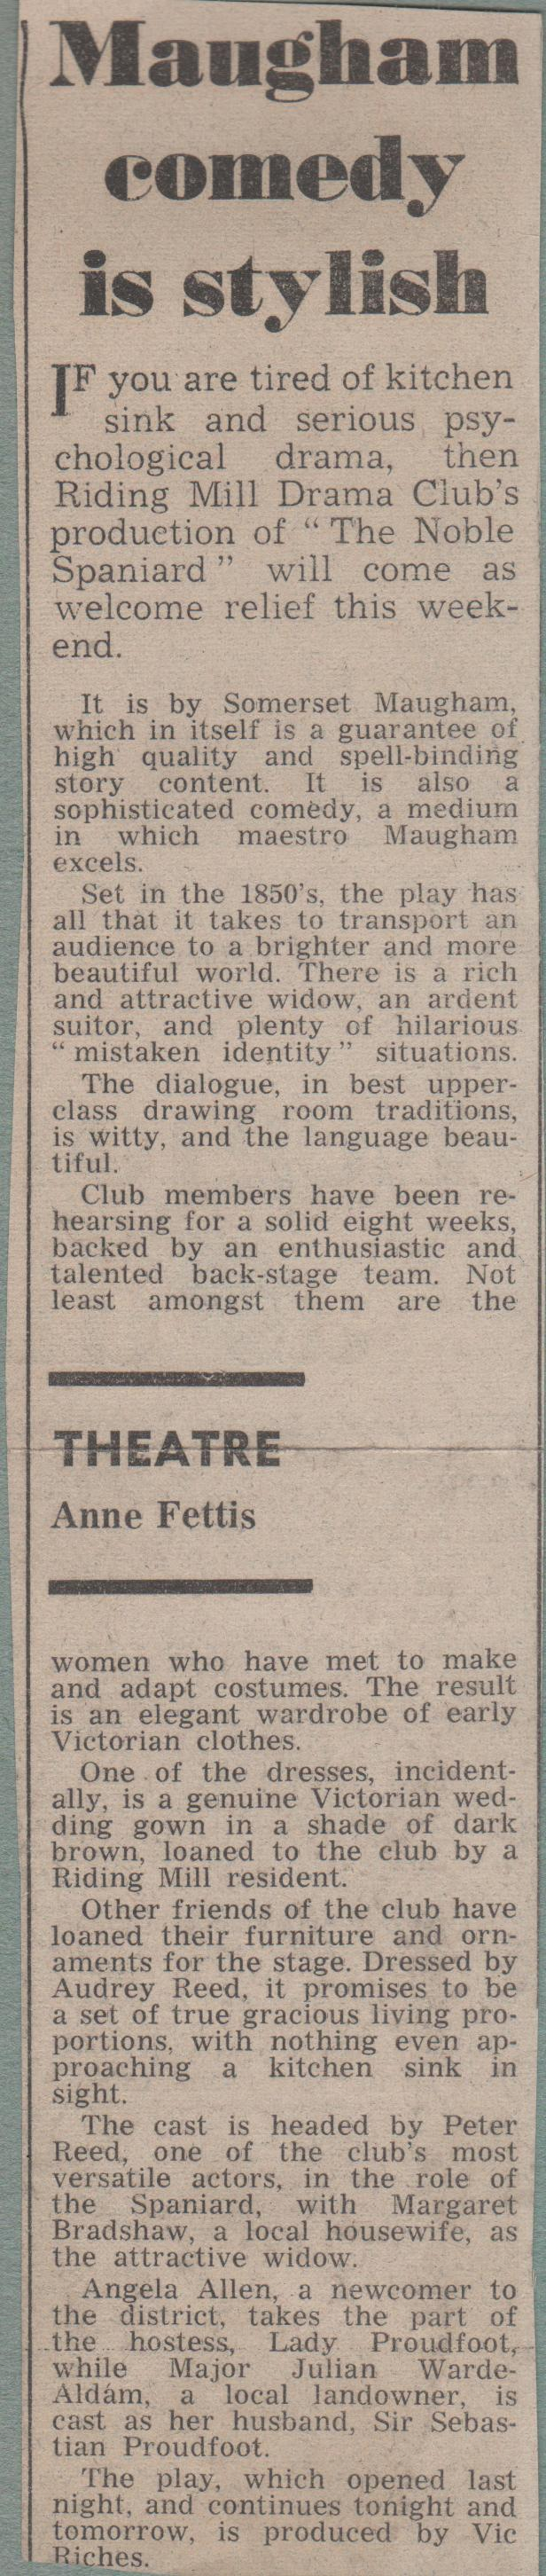 1972, Riding Mill Drama Club, The Nobel